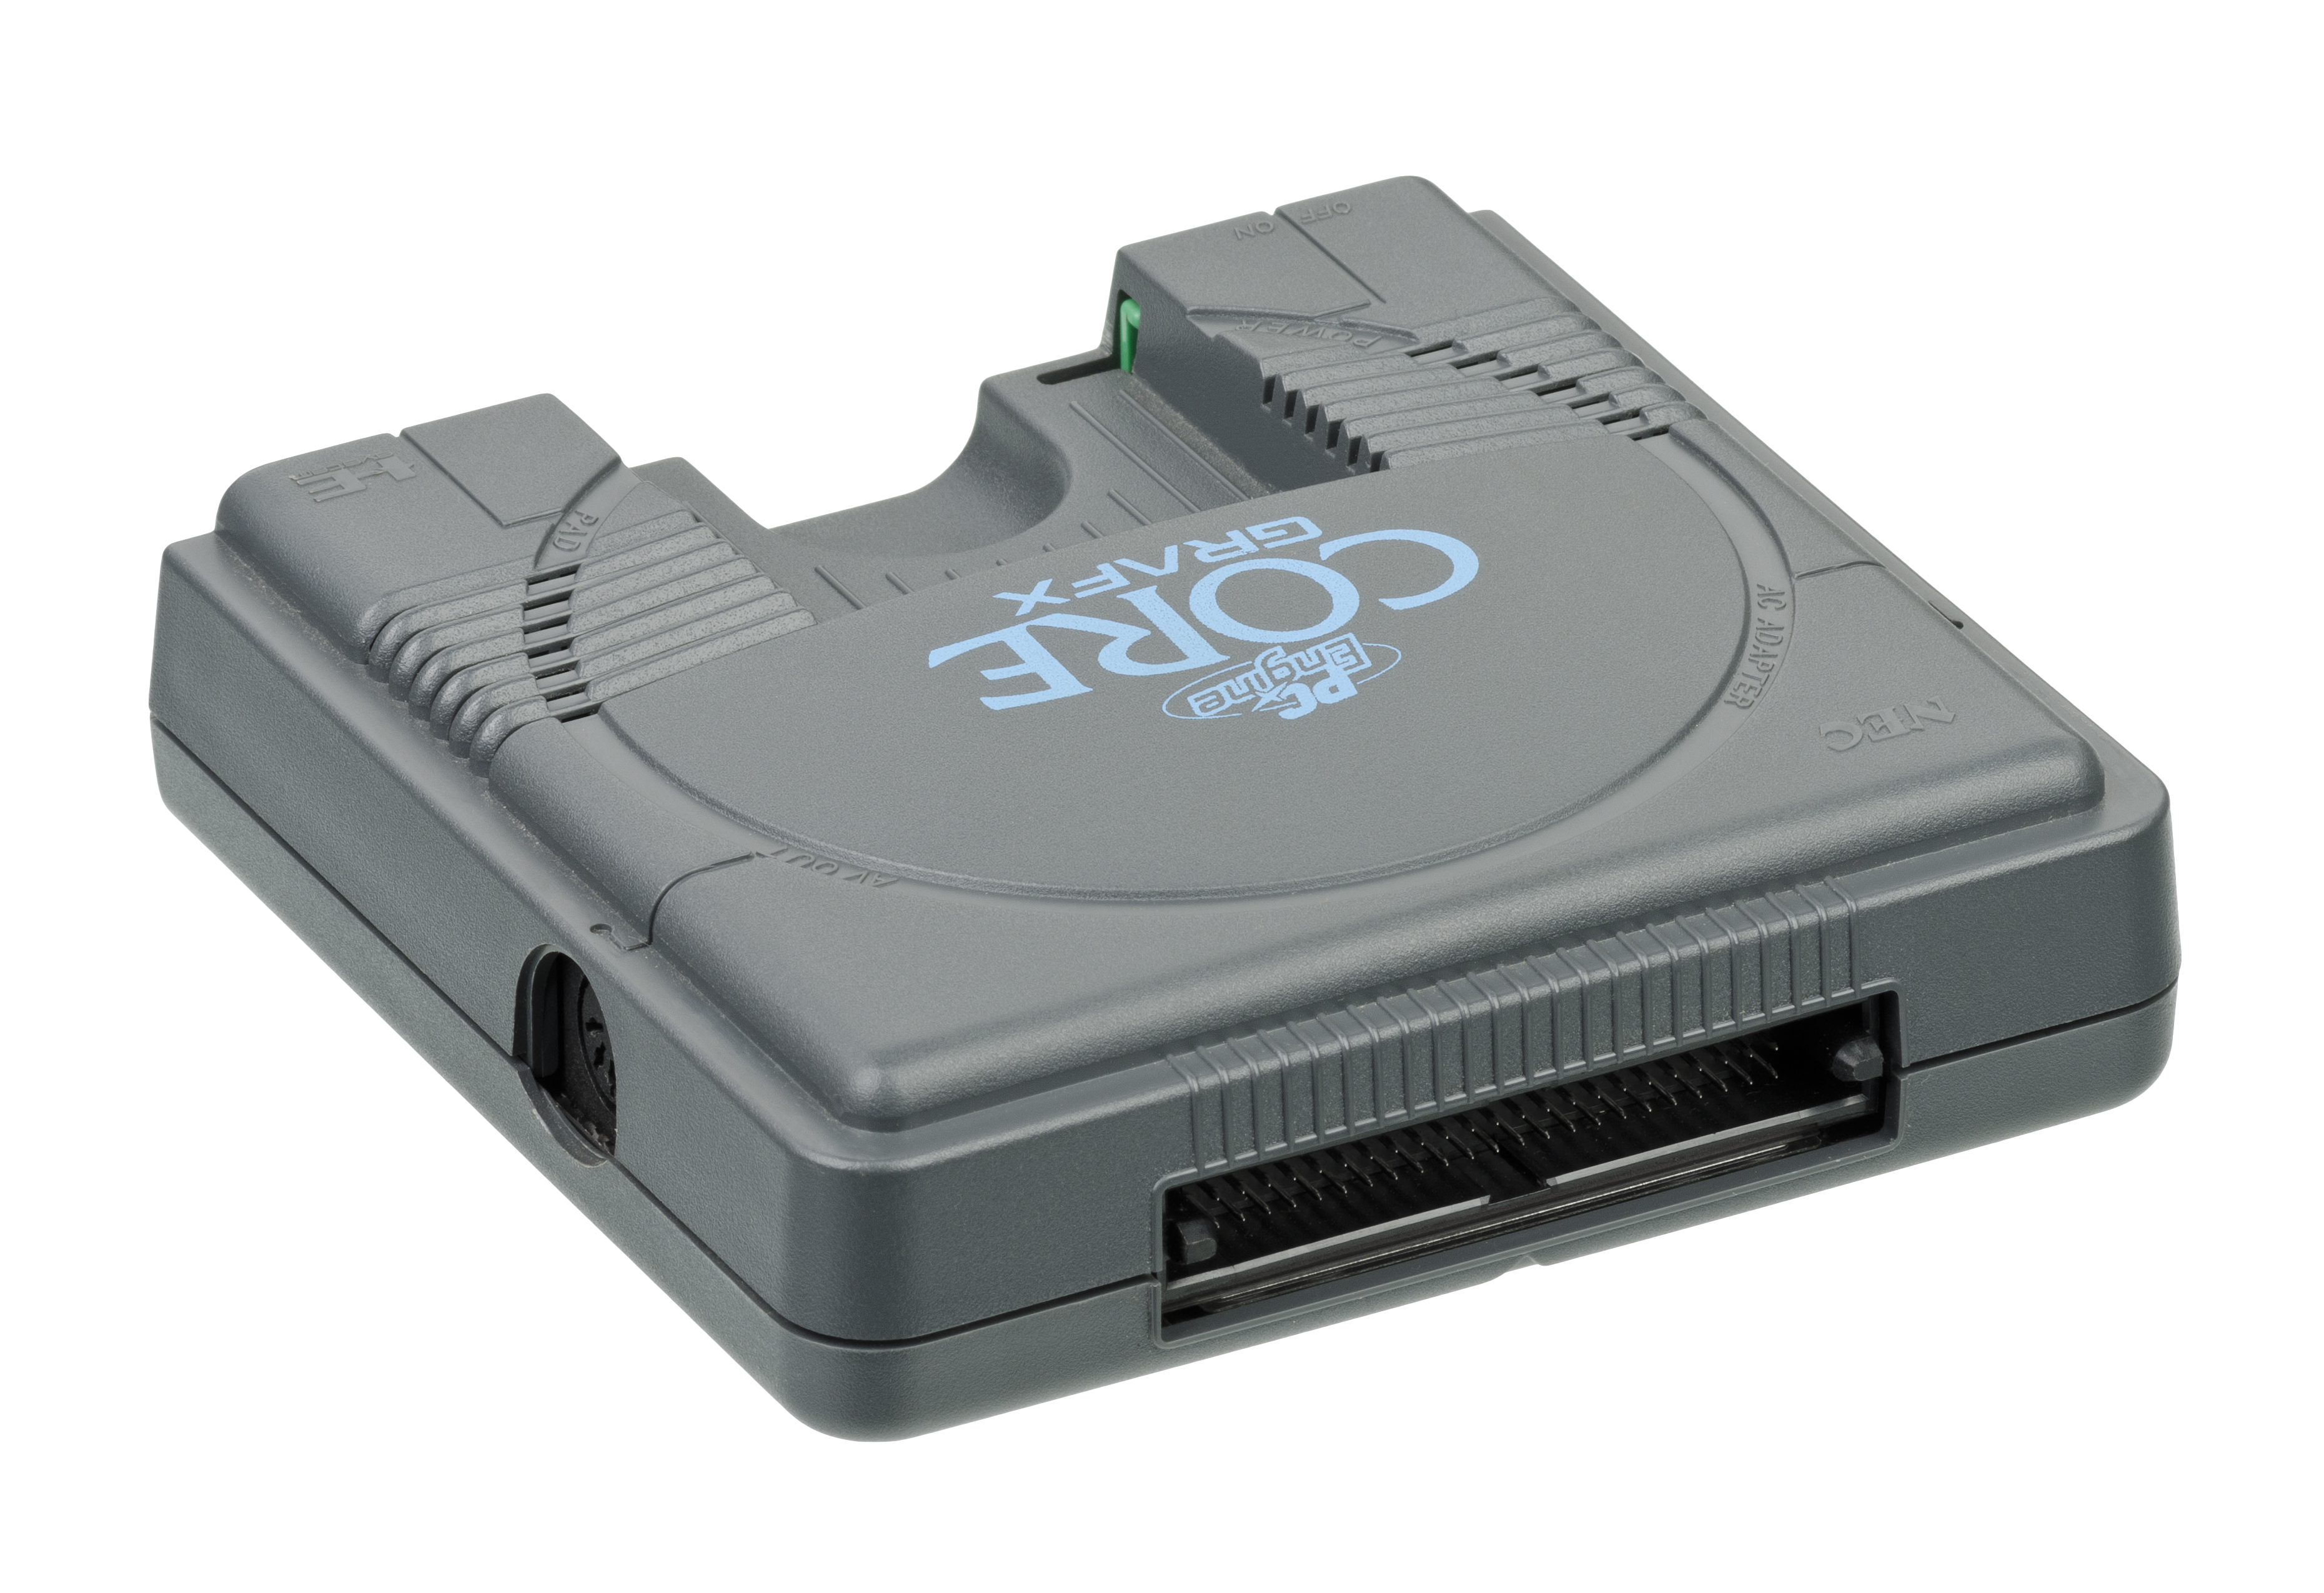 File:NEC-PC-Engine-Core-Grafx-Console-BL jpg - Wikimedia Commons